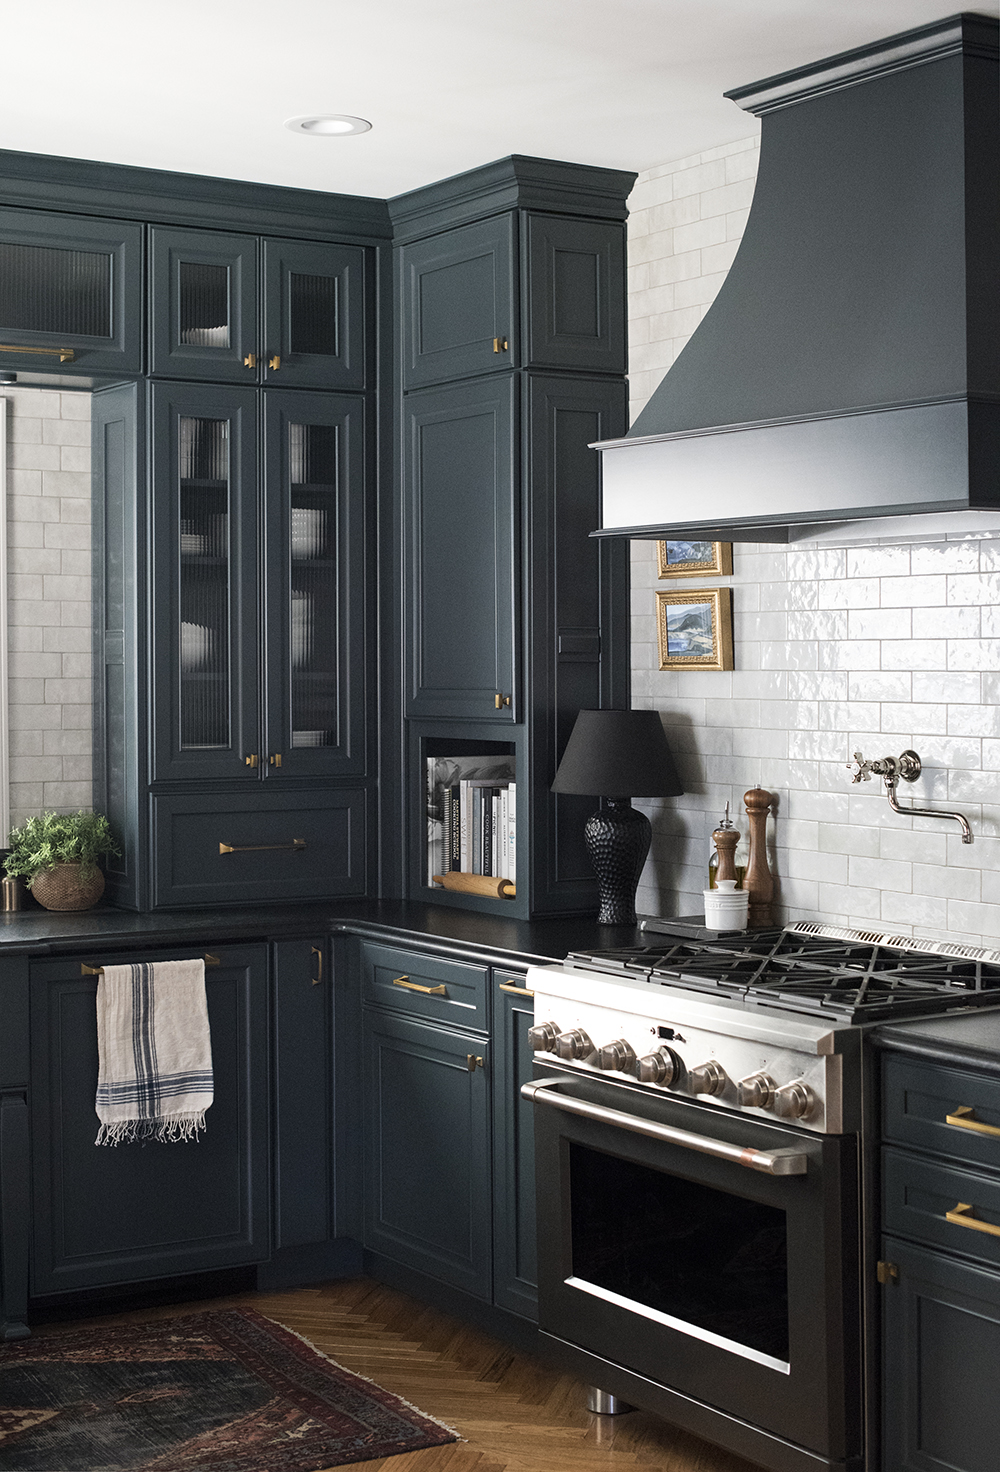 Color Matching Our Kitchen Cabinets (+Painting Tips) - roomfortuesday.com